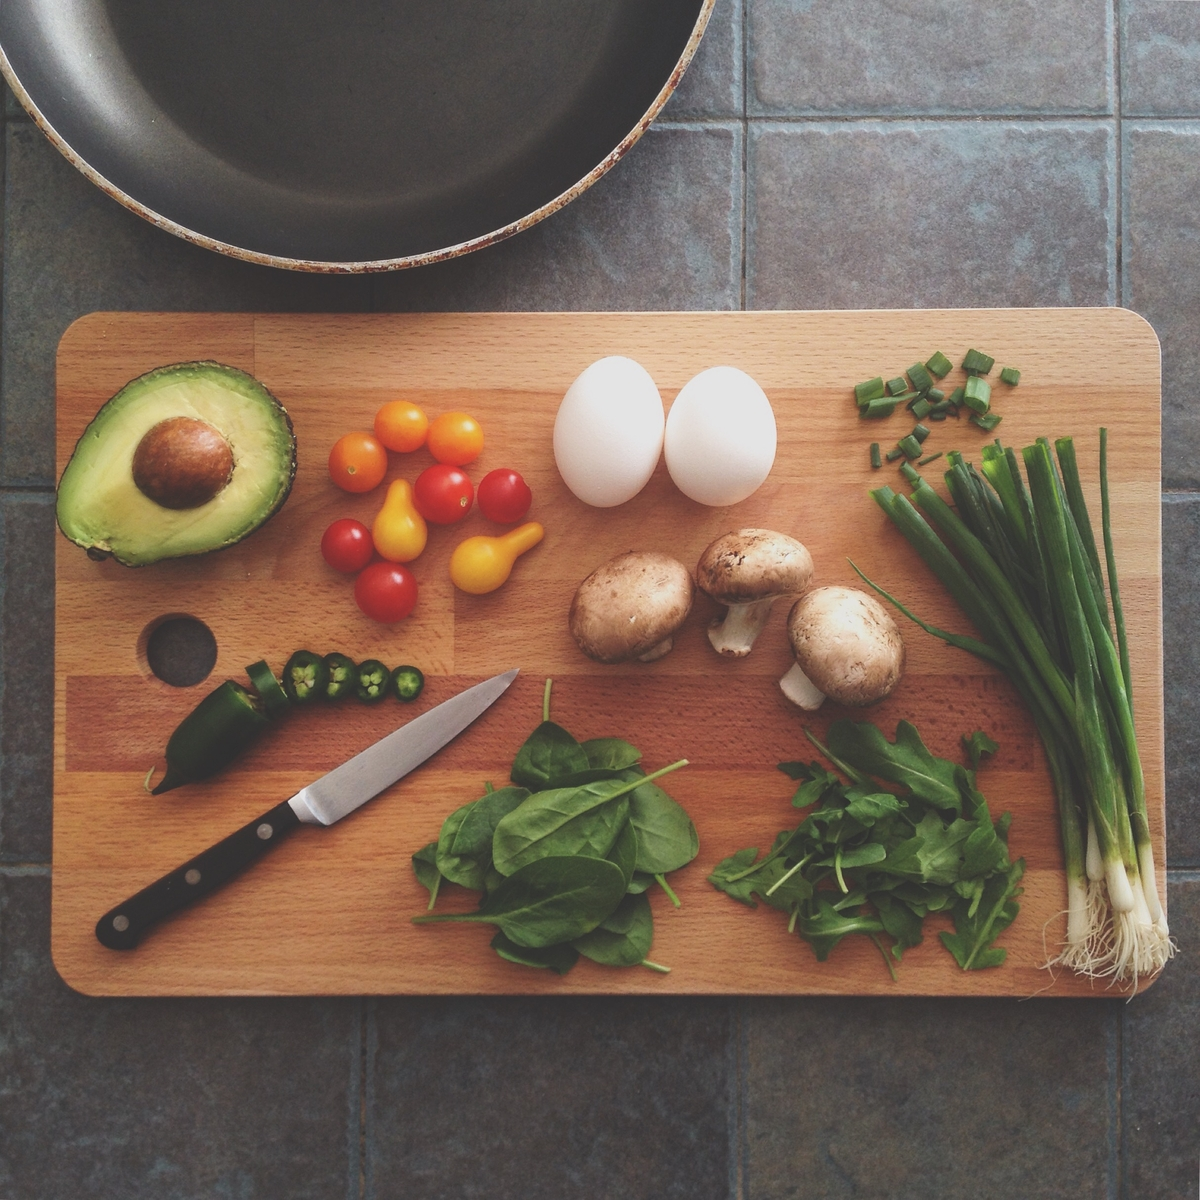 Photo of vegetables on a cutting board